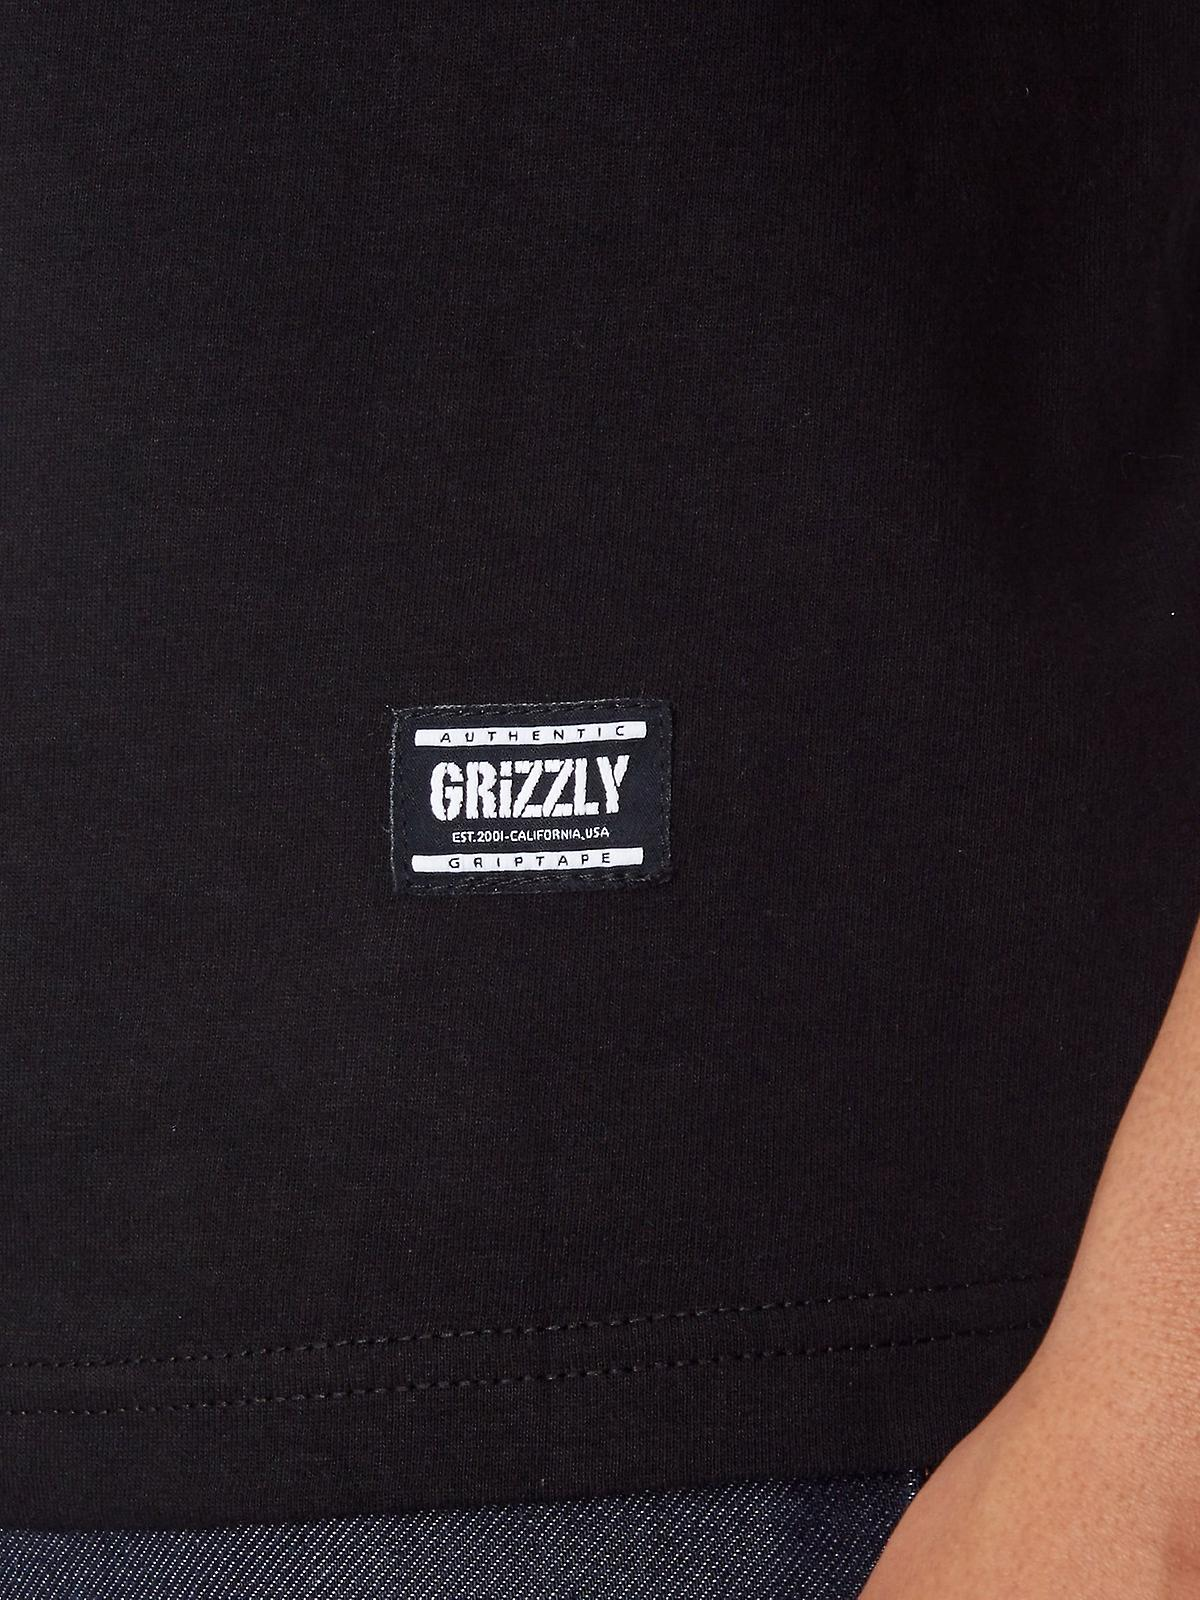 Grizzly Black Carnivore T-Shirt